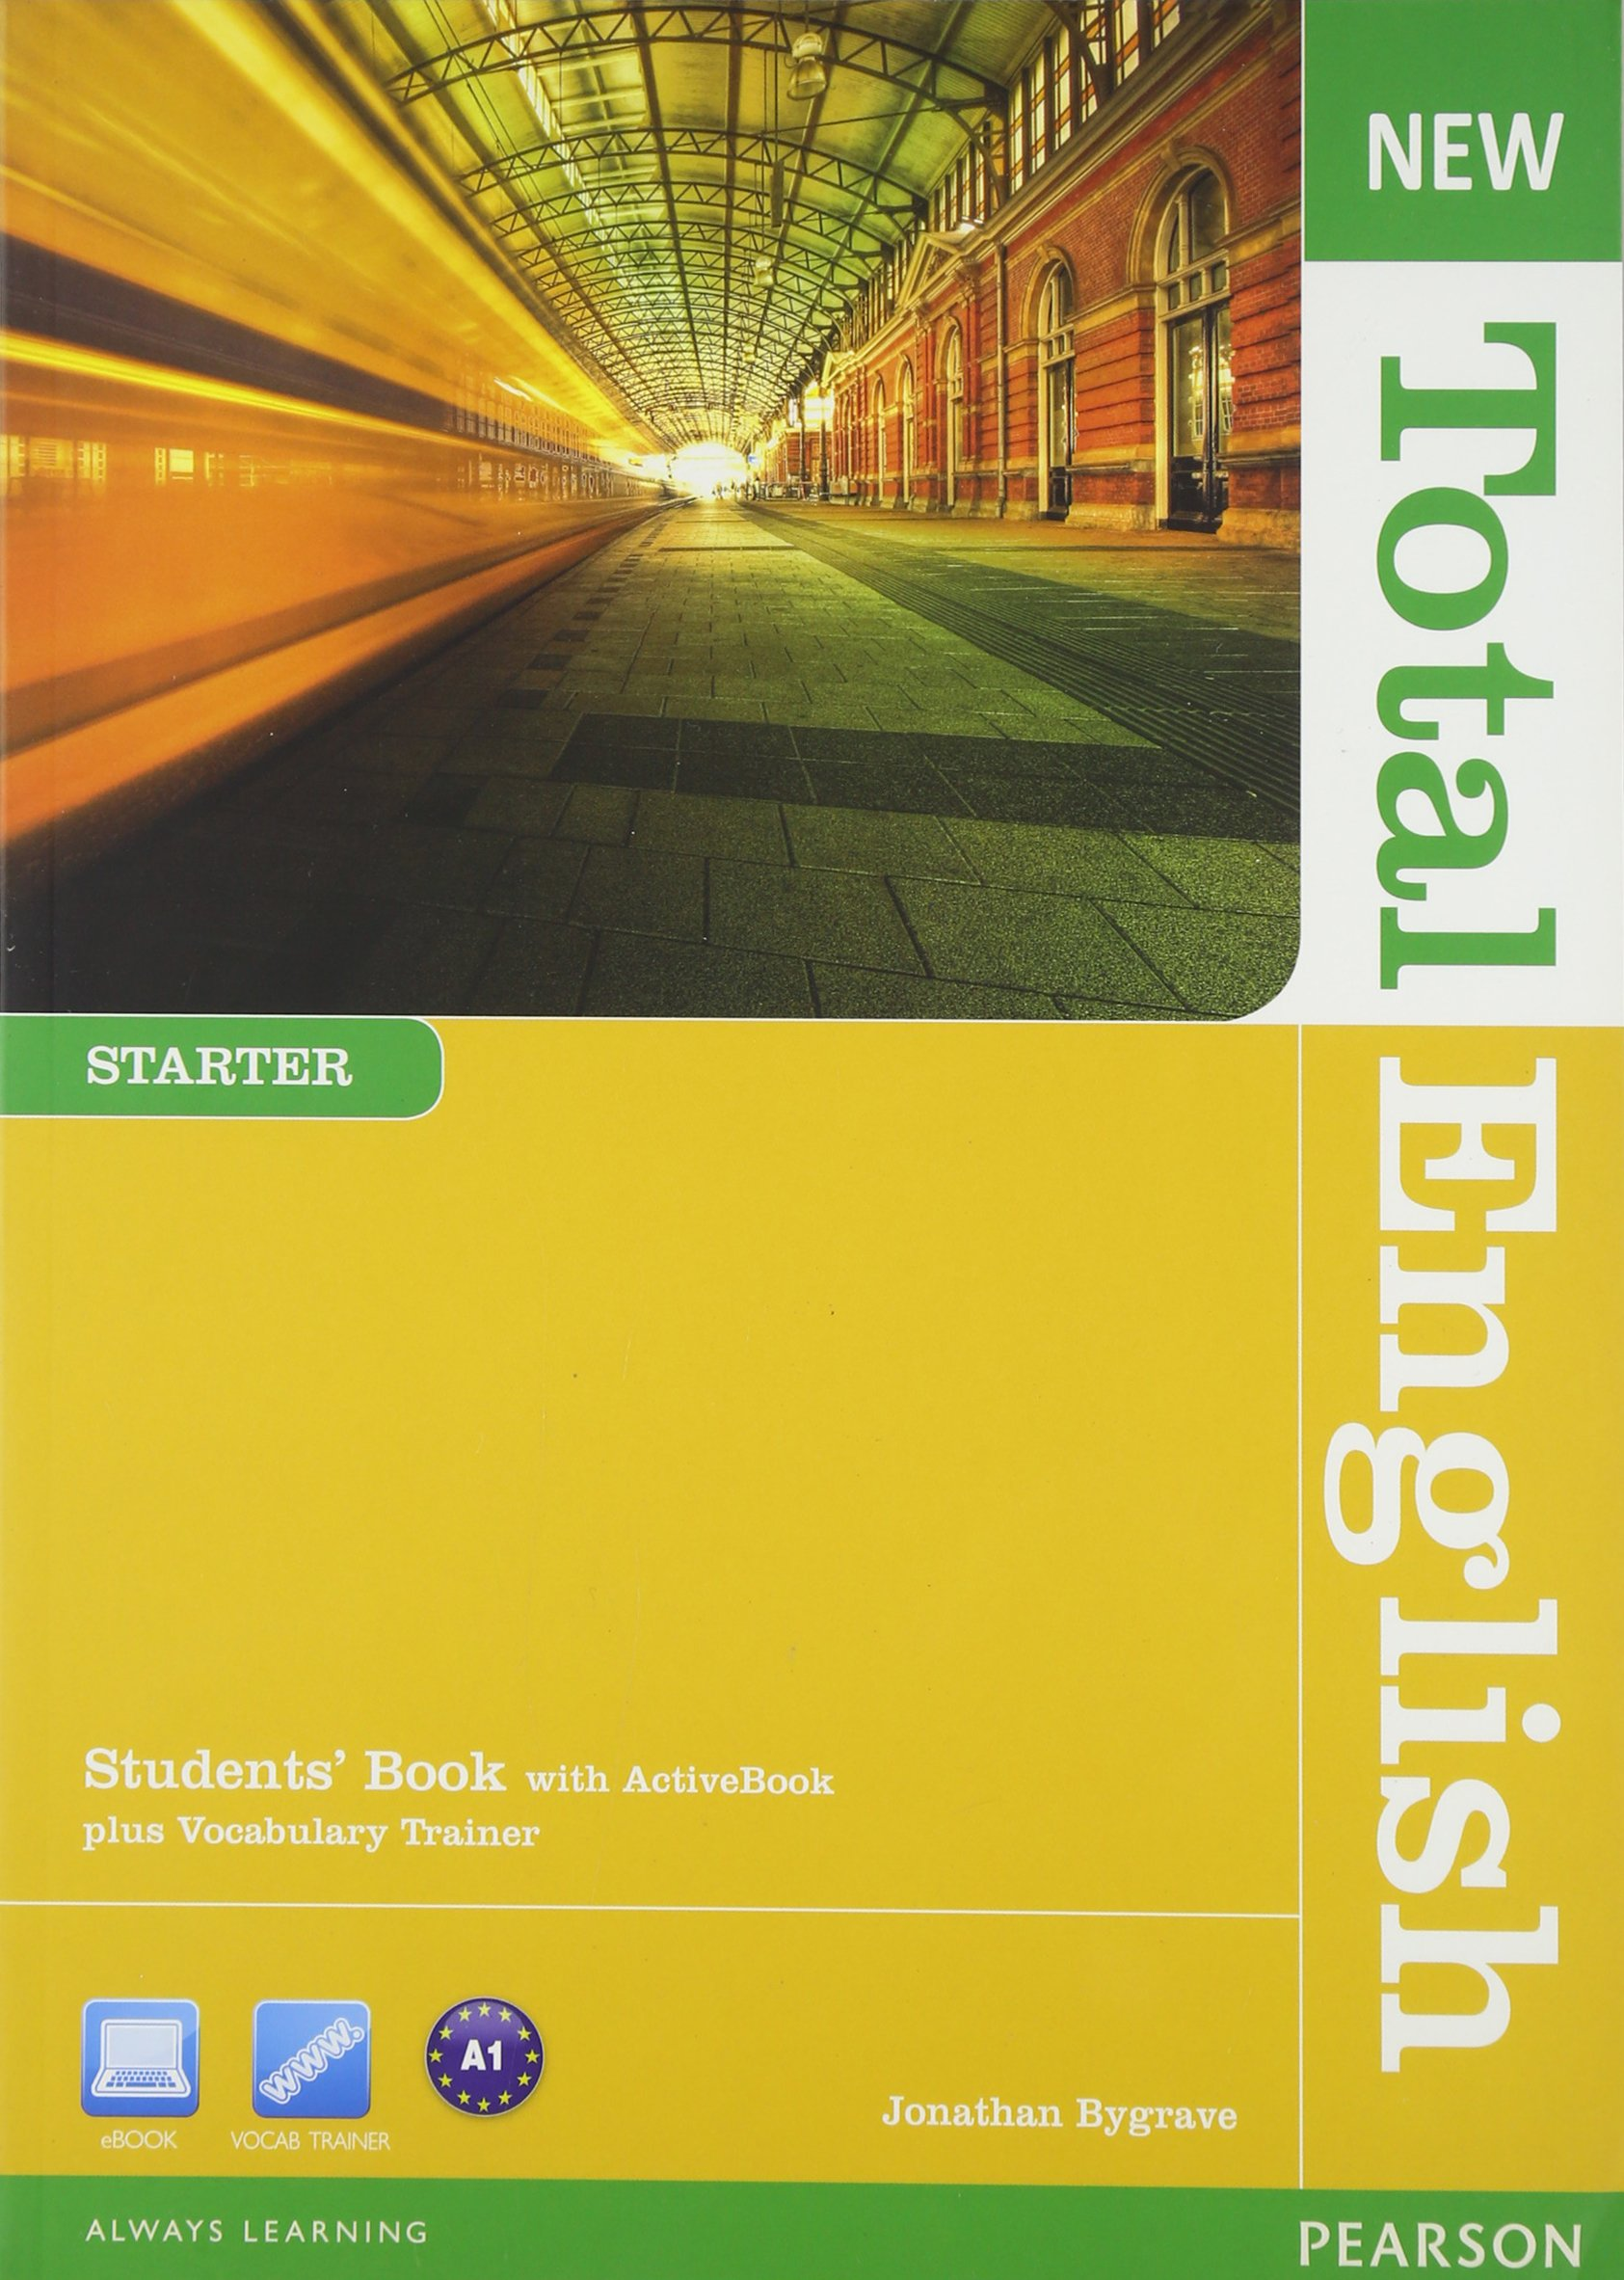 NEW TOTAL ENGLISH STARTER Student's  Book+ DVD+Active book